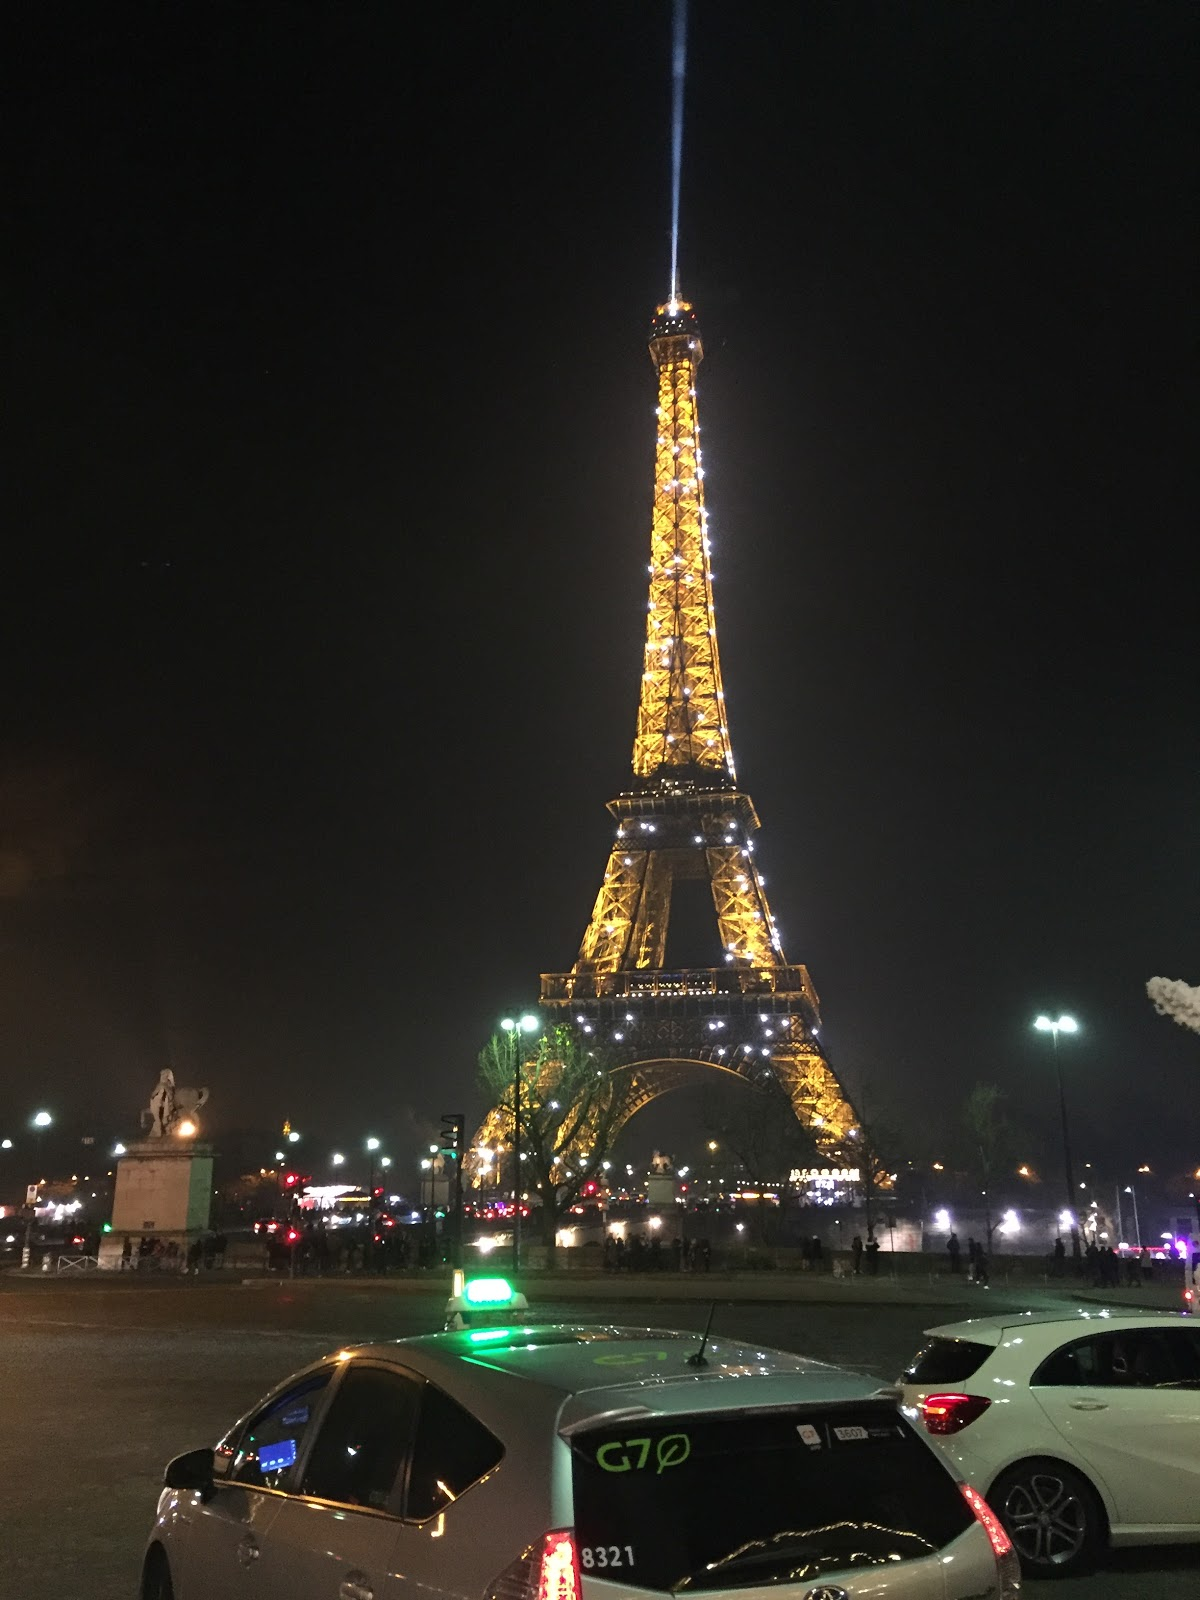 Flashy Flashy Eiffel Tower @ paris